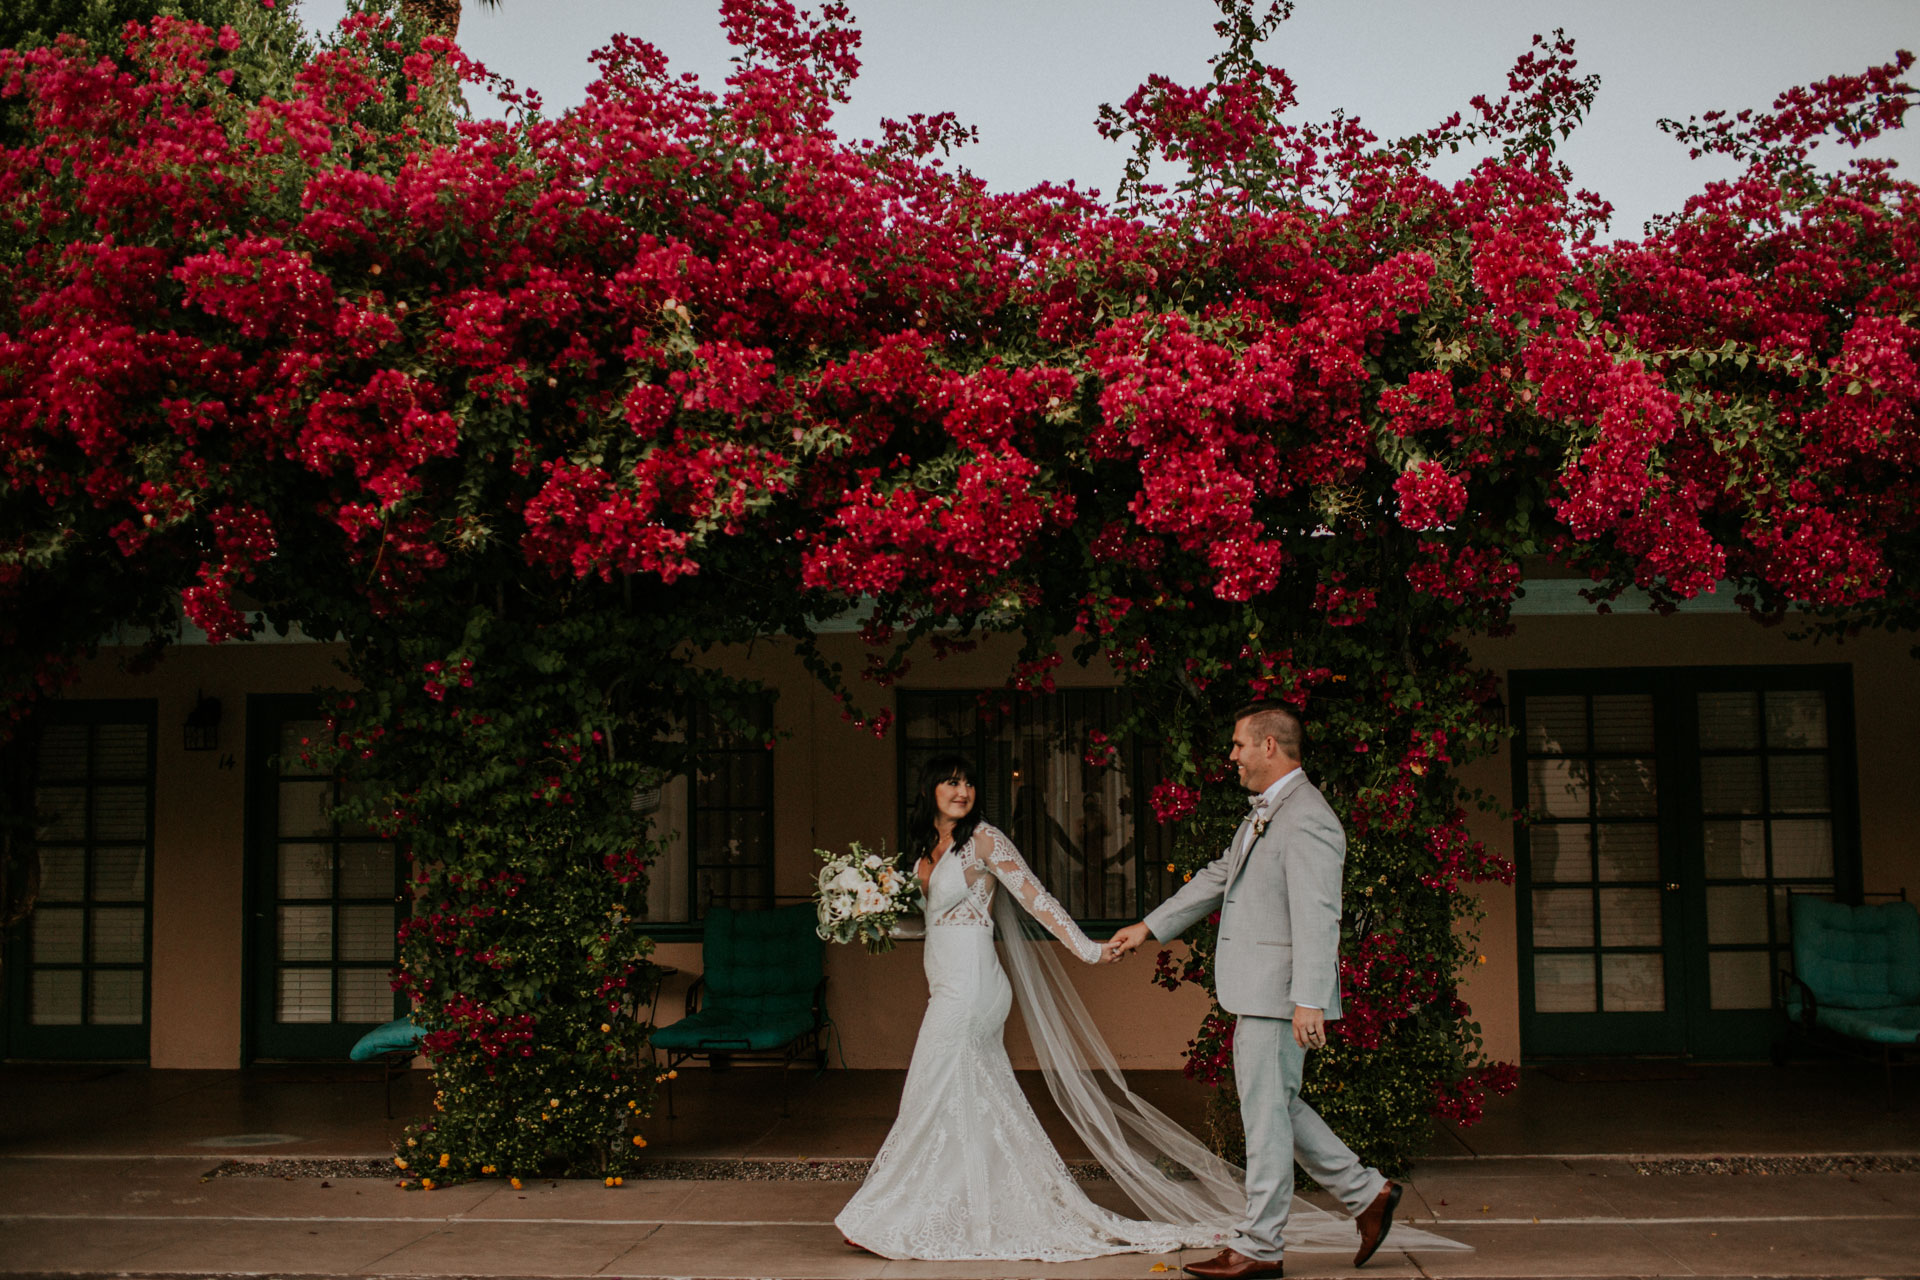 couple walking along wall of bright red bougainvillea